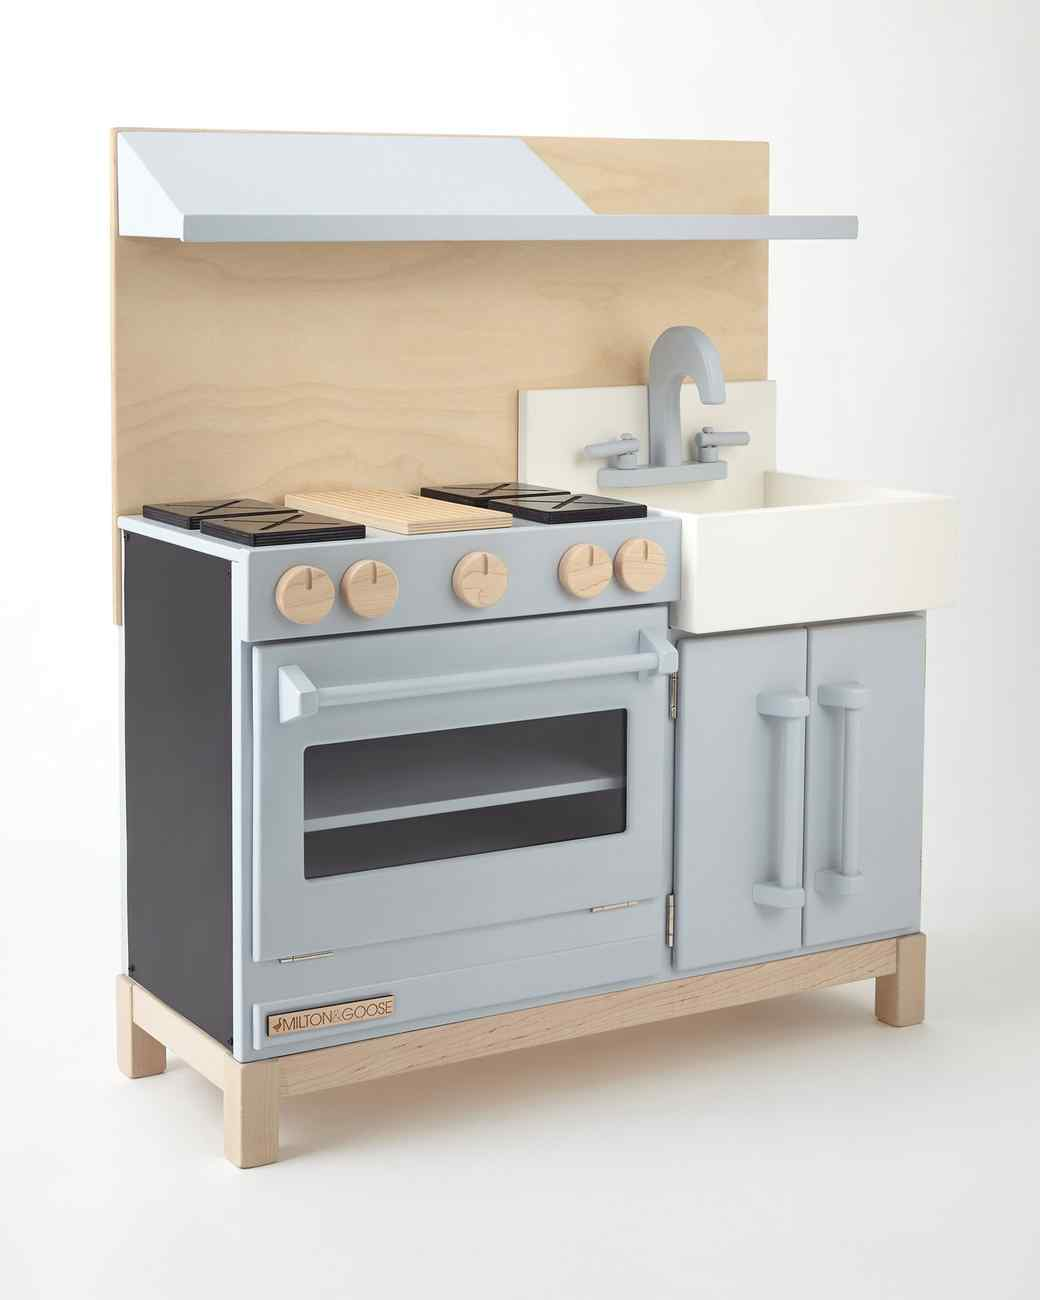 wooden kids play kitchen